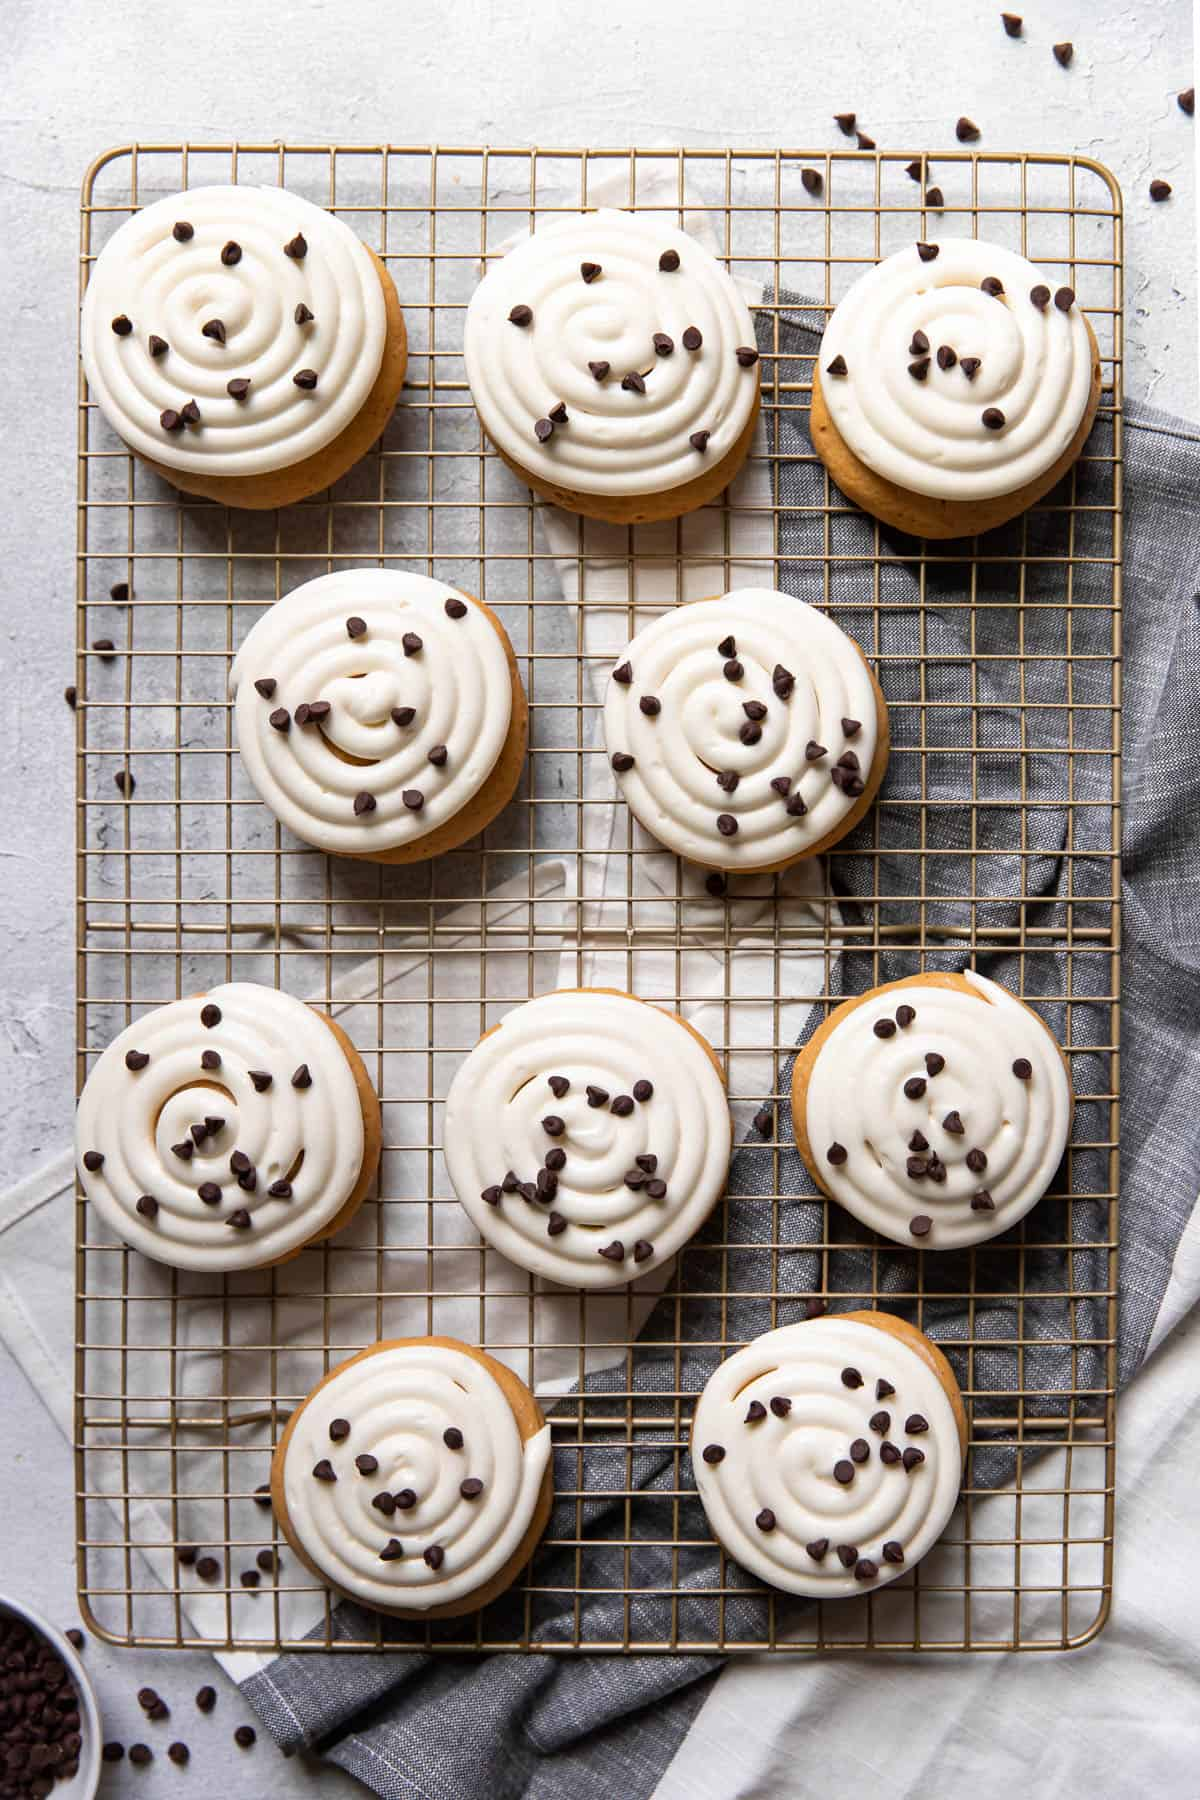 pumpkin cake cookie with cream cheese frosting and chocolate chips on top.